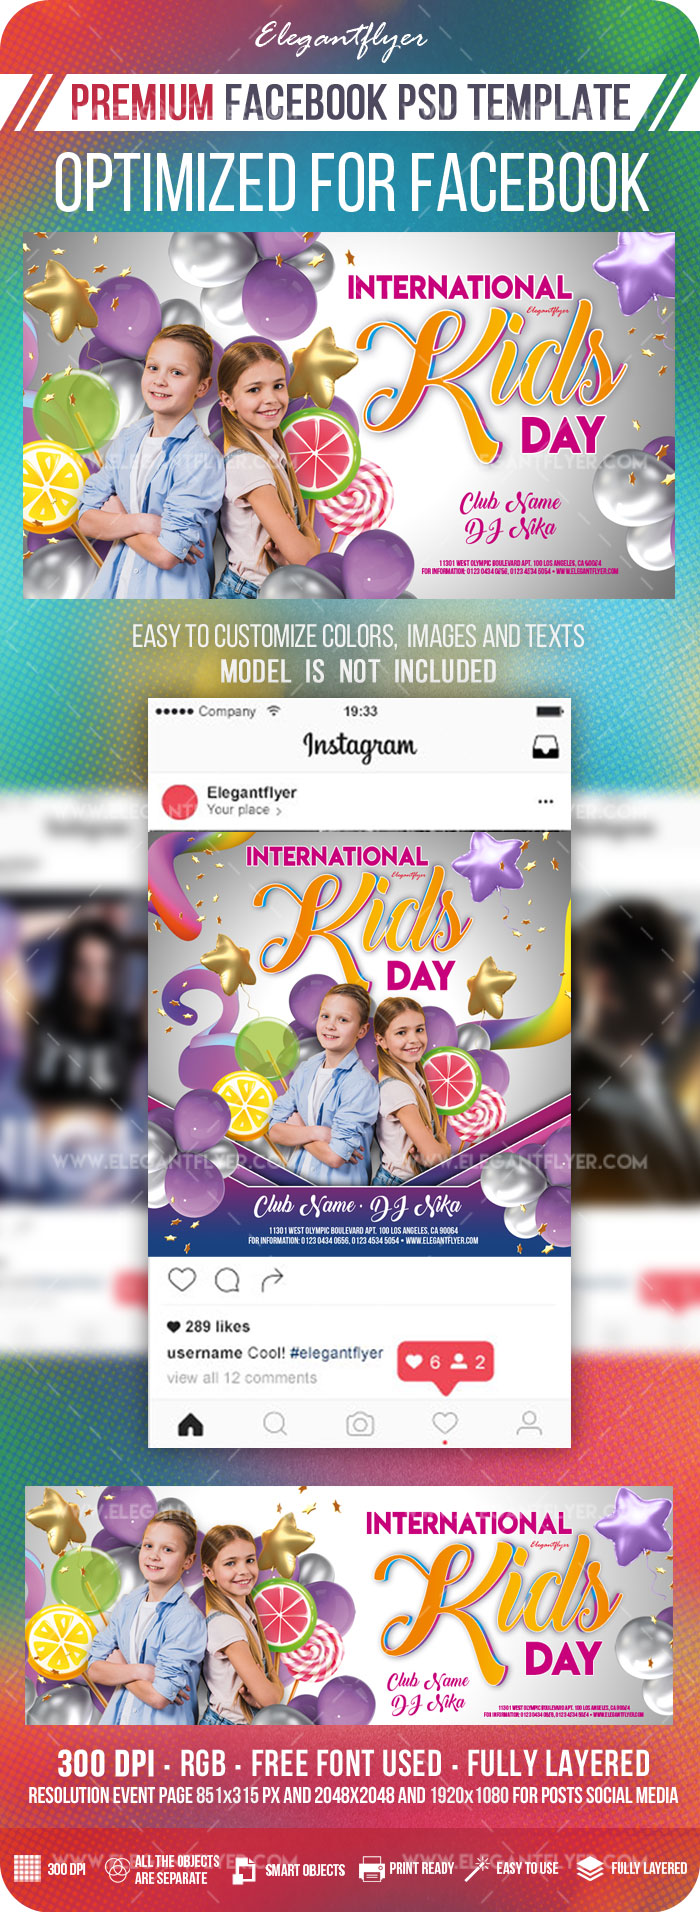 International Kids Day Invitation – Facebook Cover Template in PSD + Post + Event cover